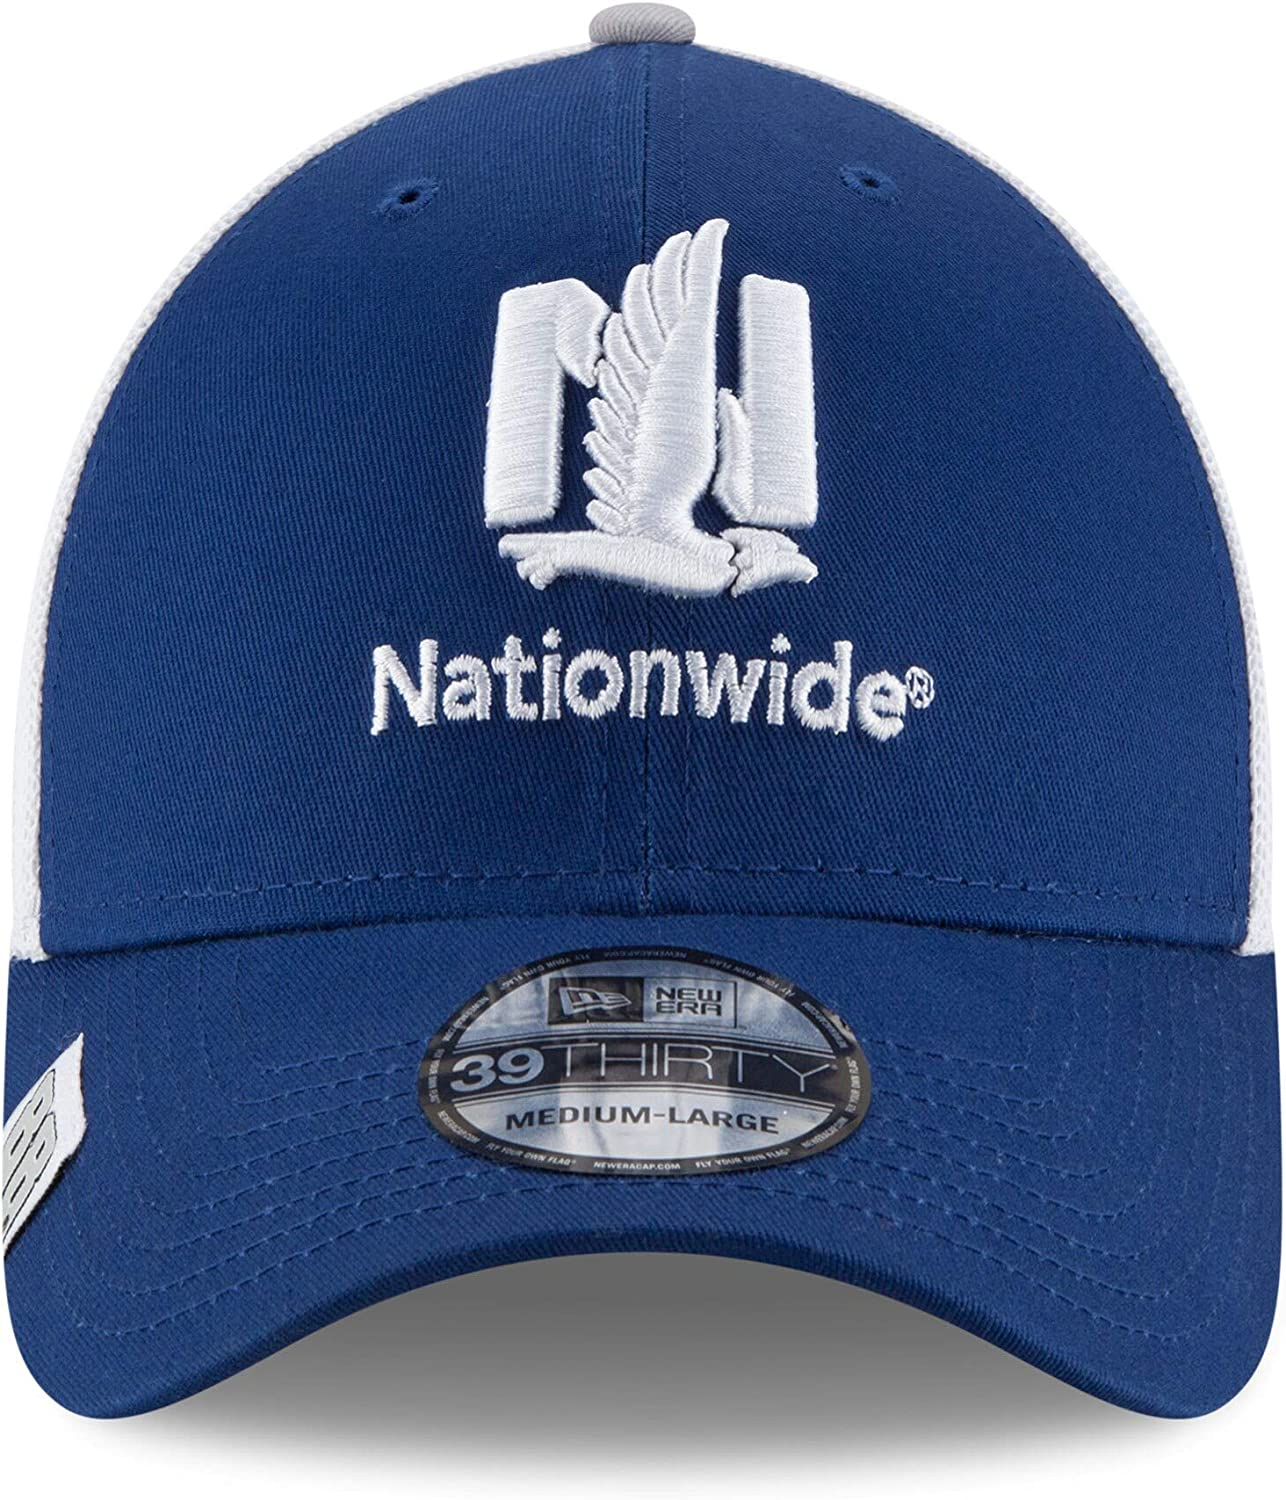 NASCAR Dale Earnhardt Jr Nationwide Logo Wrapped 39THIRTY Stretch Fit Cap